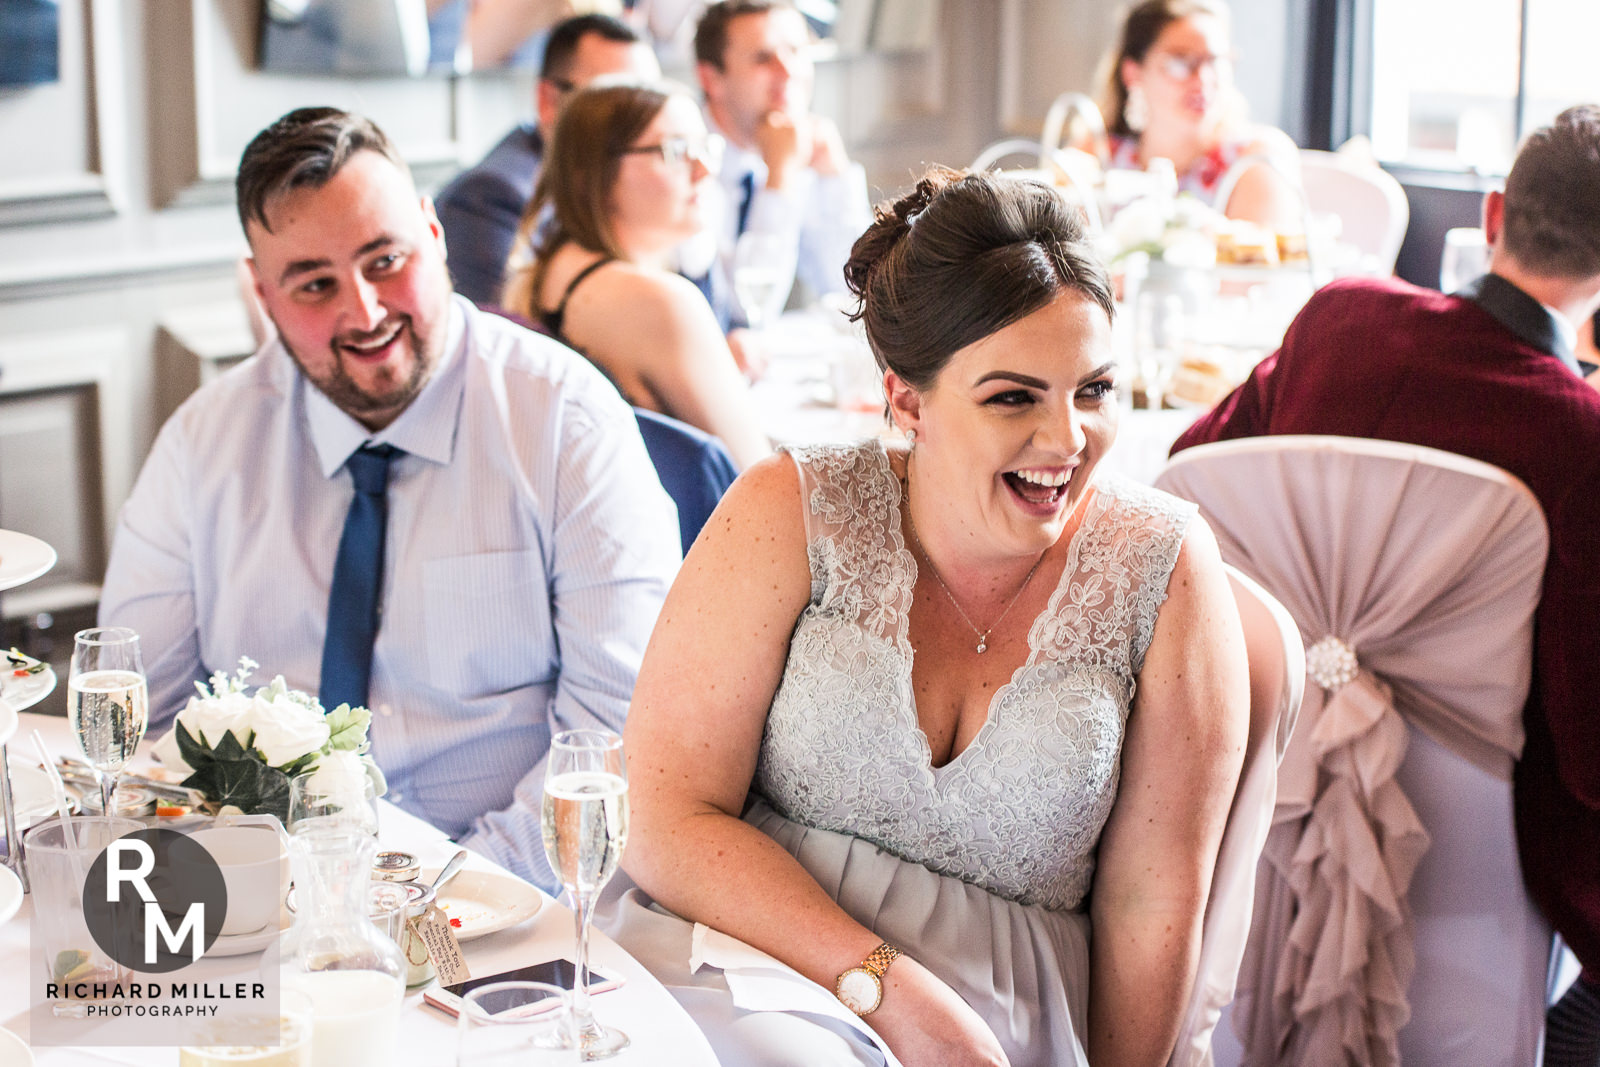 Dale Natalie Web 399 - An Awesome Chester Wedding at Oddfellows